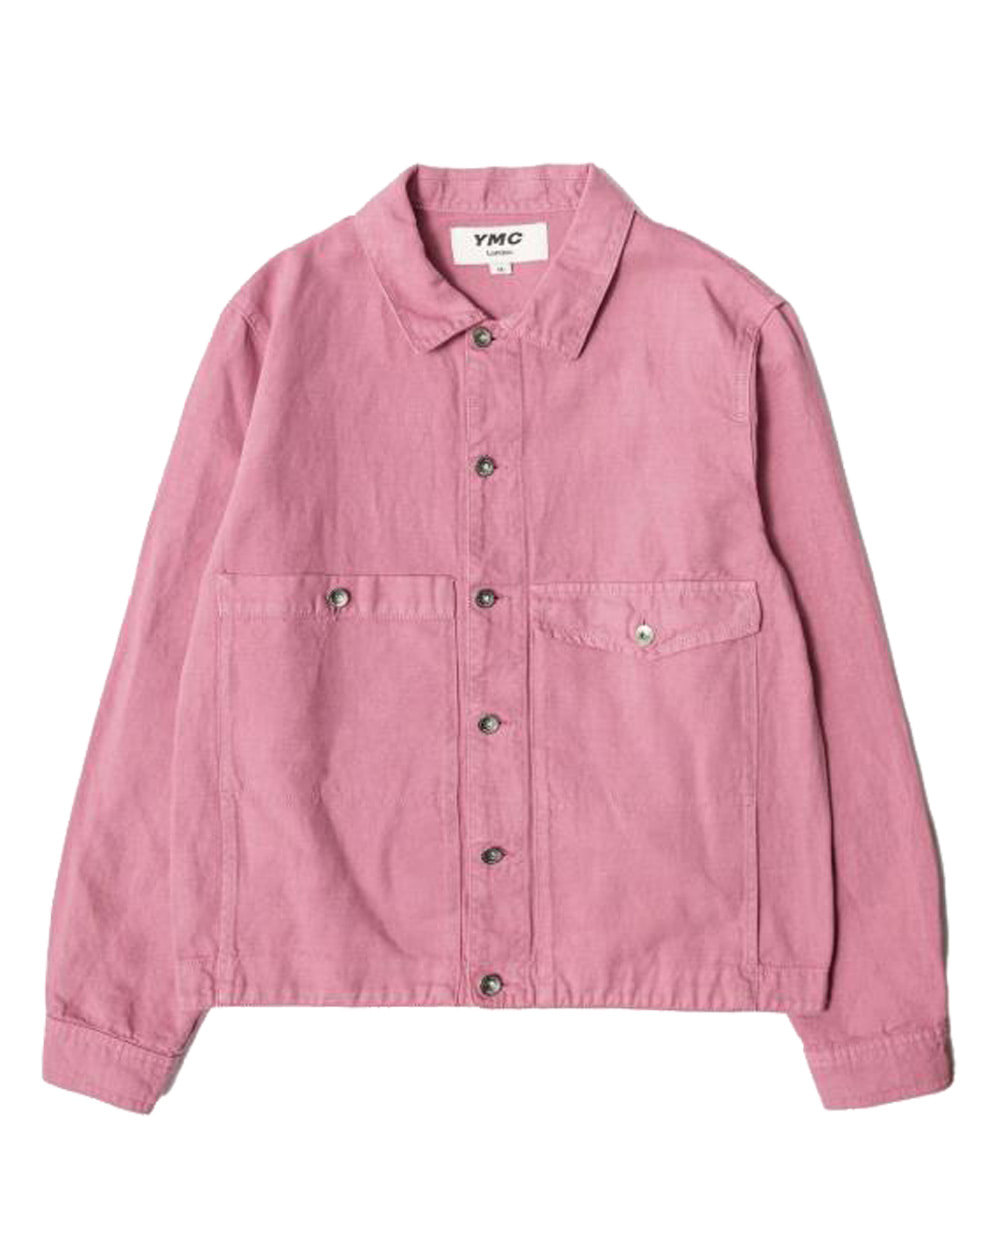 YMC Pinkley Jacket (Pink)